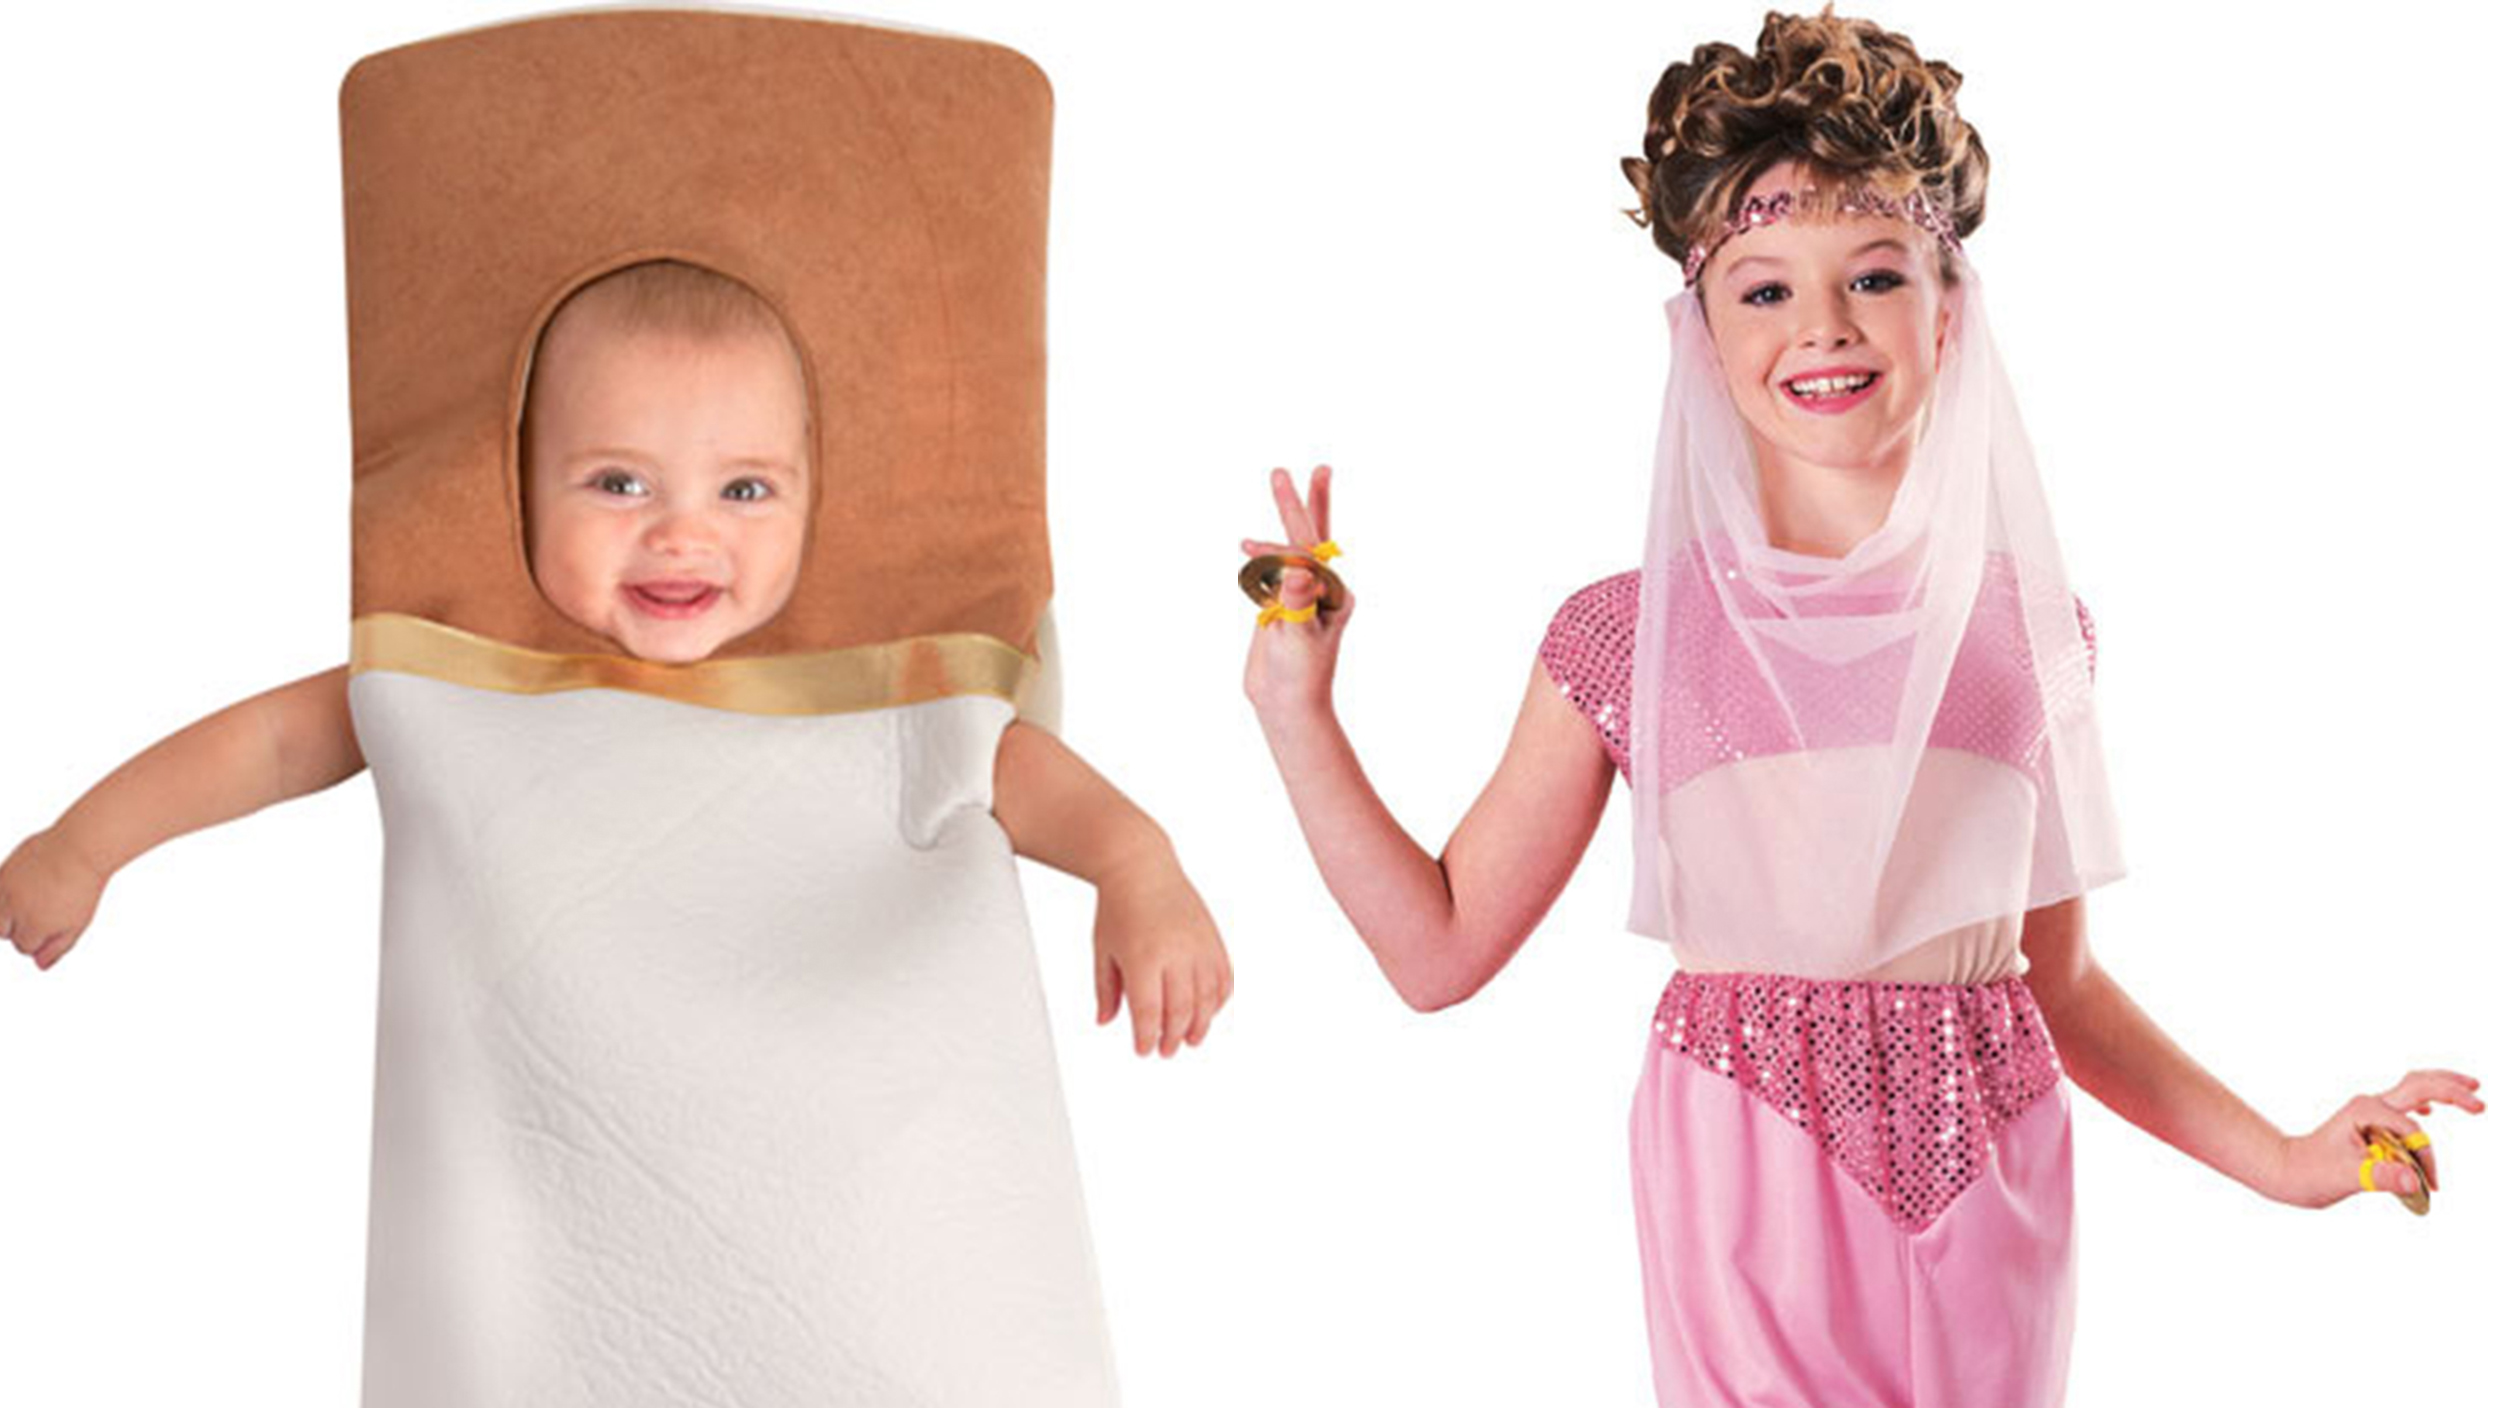 scary bad: 9 worst halloween costumes for kids